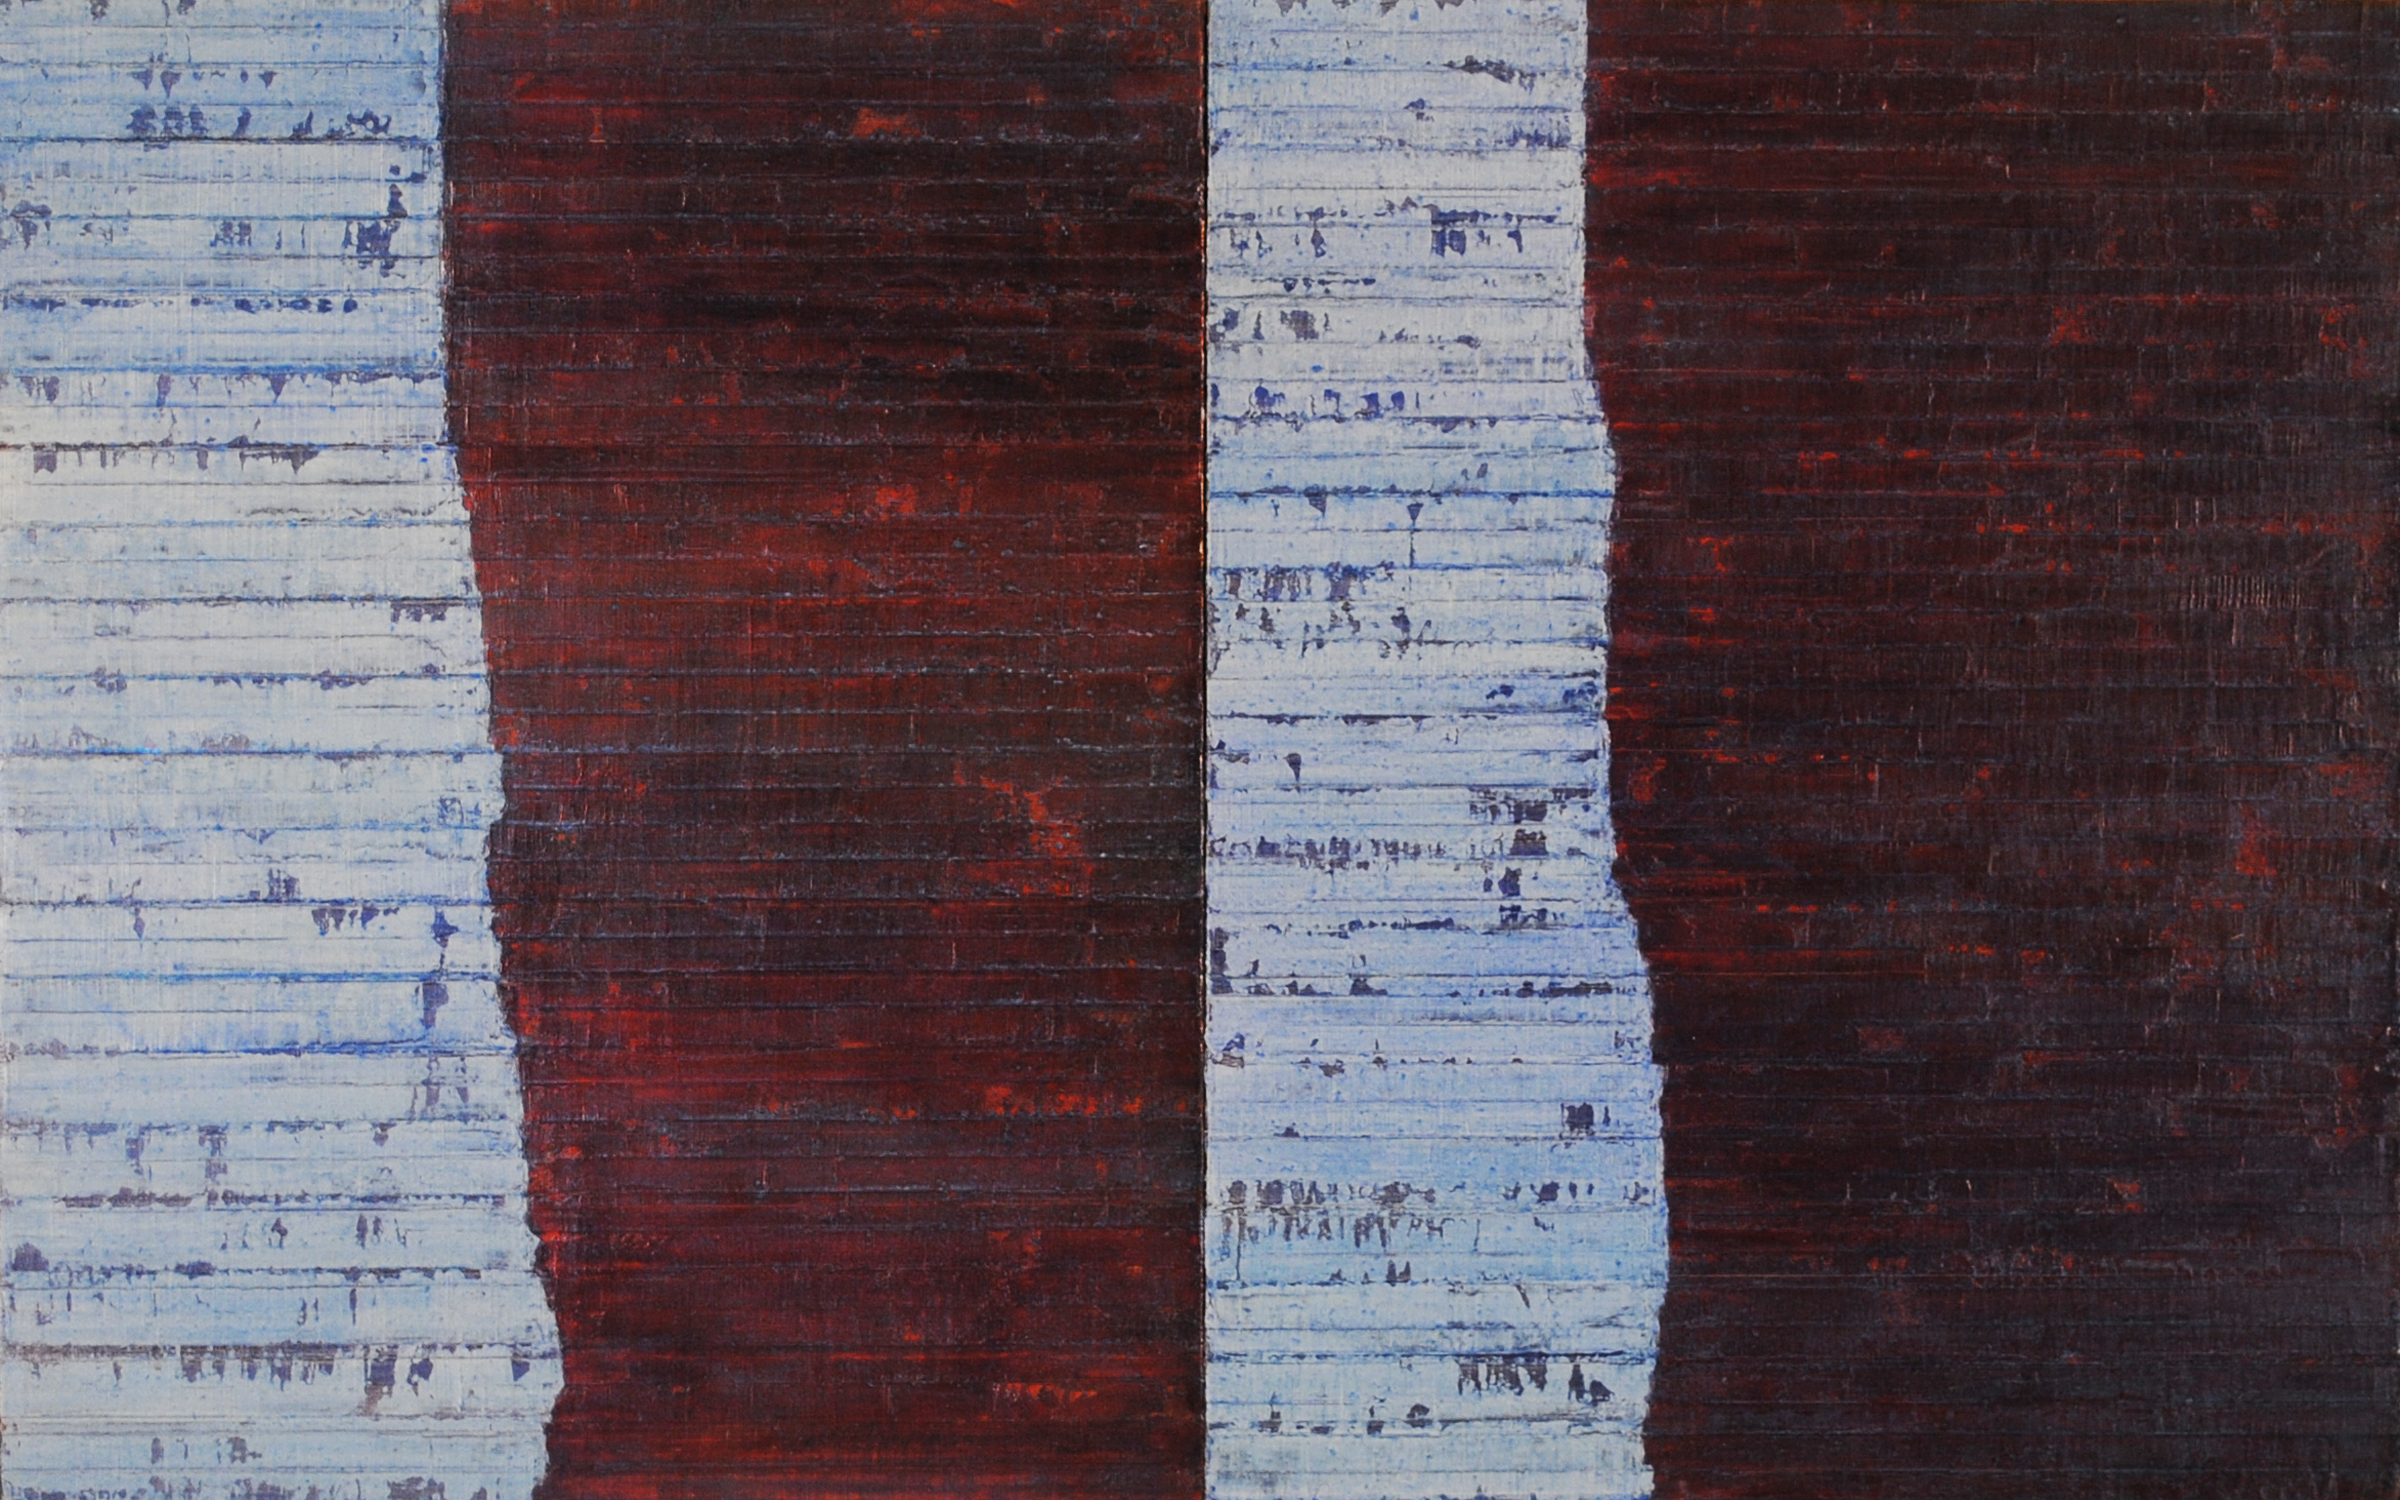 Linea Terminale: 11.10, 2010, Oil on linen over panels, 20 x 36 inches.